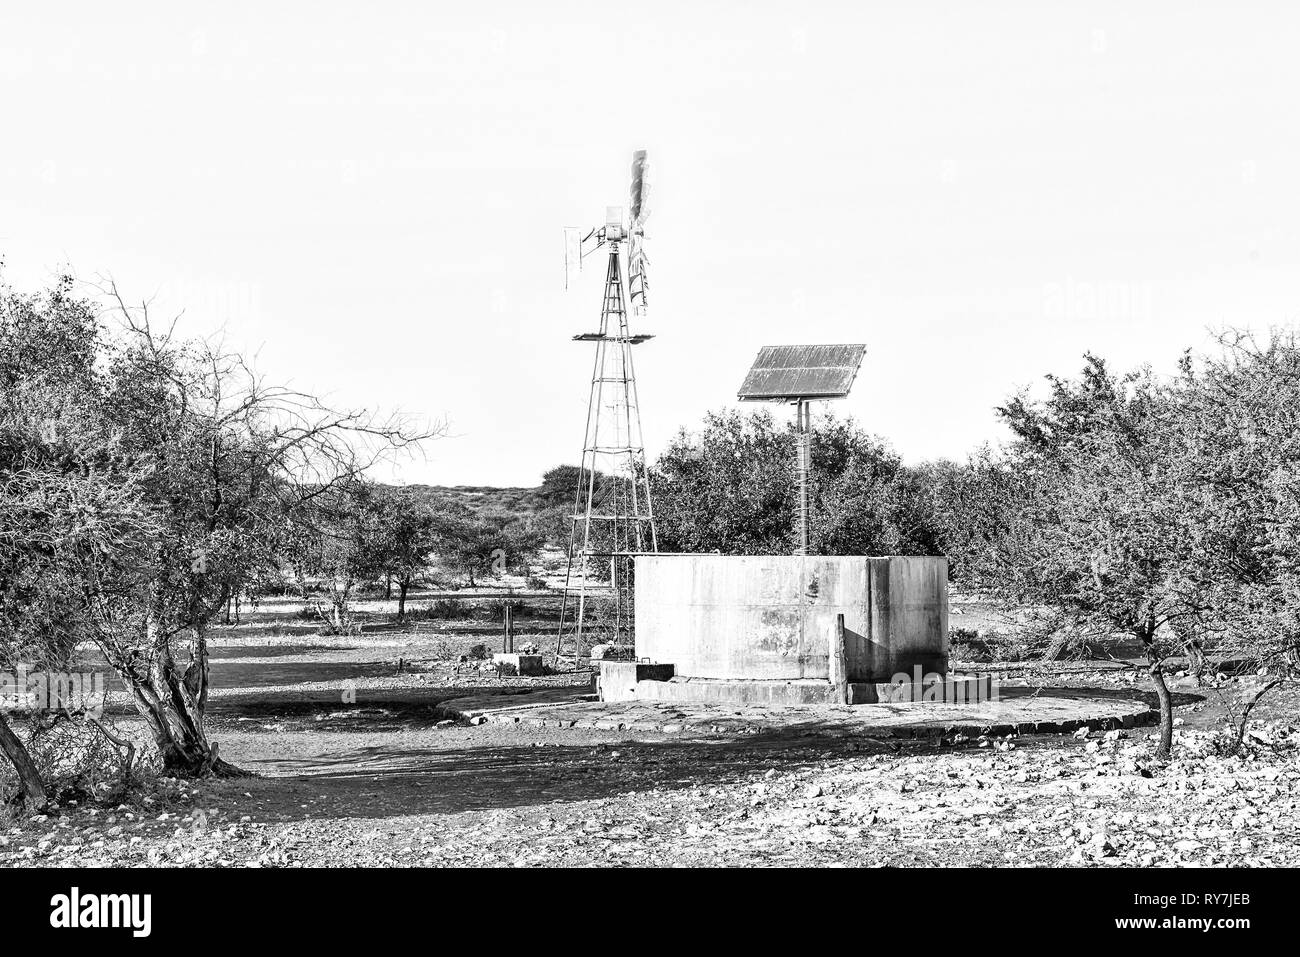 A water-pumping windmill and solar panels for a waterpump near Schmidtsfrift, a village in the Northern Cape Province of South Africa. Monochrome - Stock Image